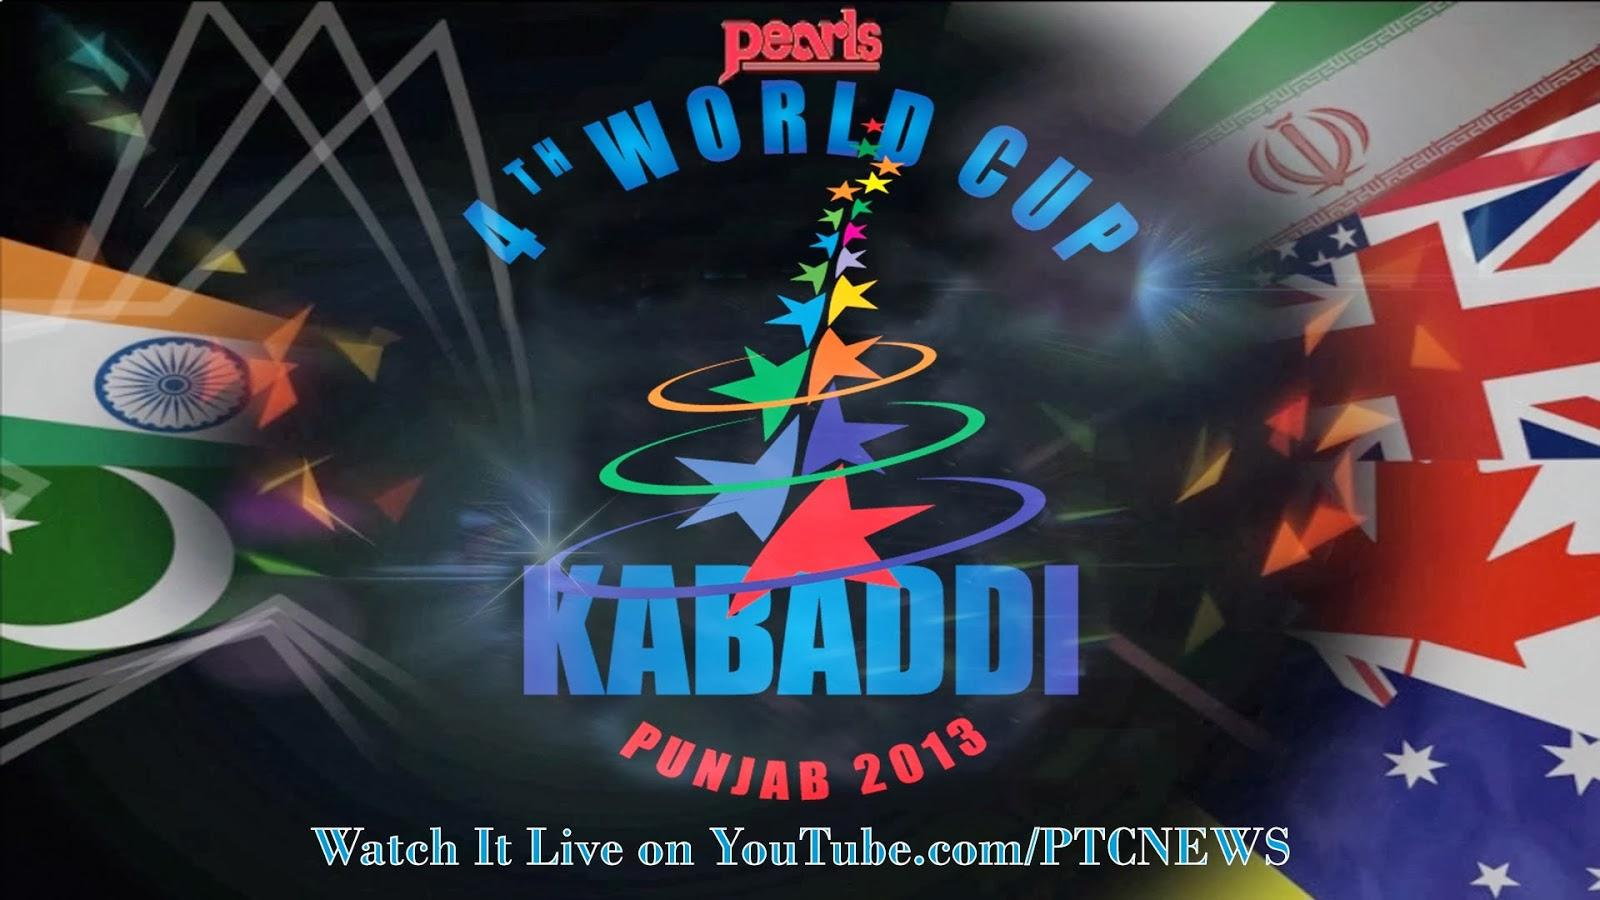 Pearls 4th World Cup Kabaddi Punjab 2013 - All Match Results